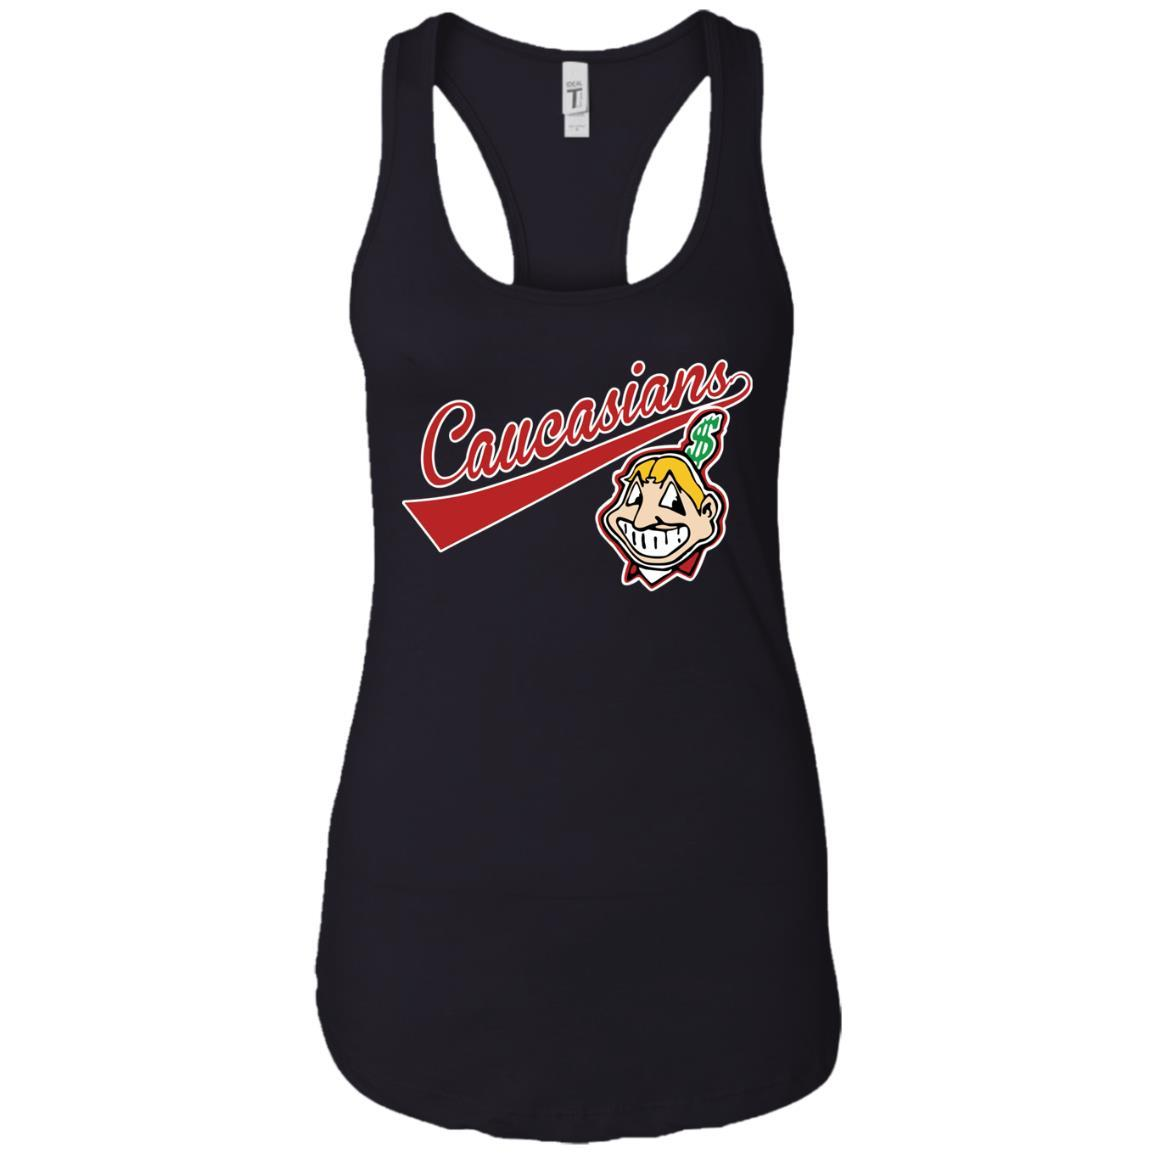 Cleveland Caucasians Native Go Indians - Ladies Ideal Racerback Tank Black / 2XL